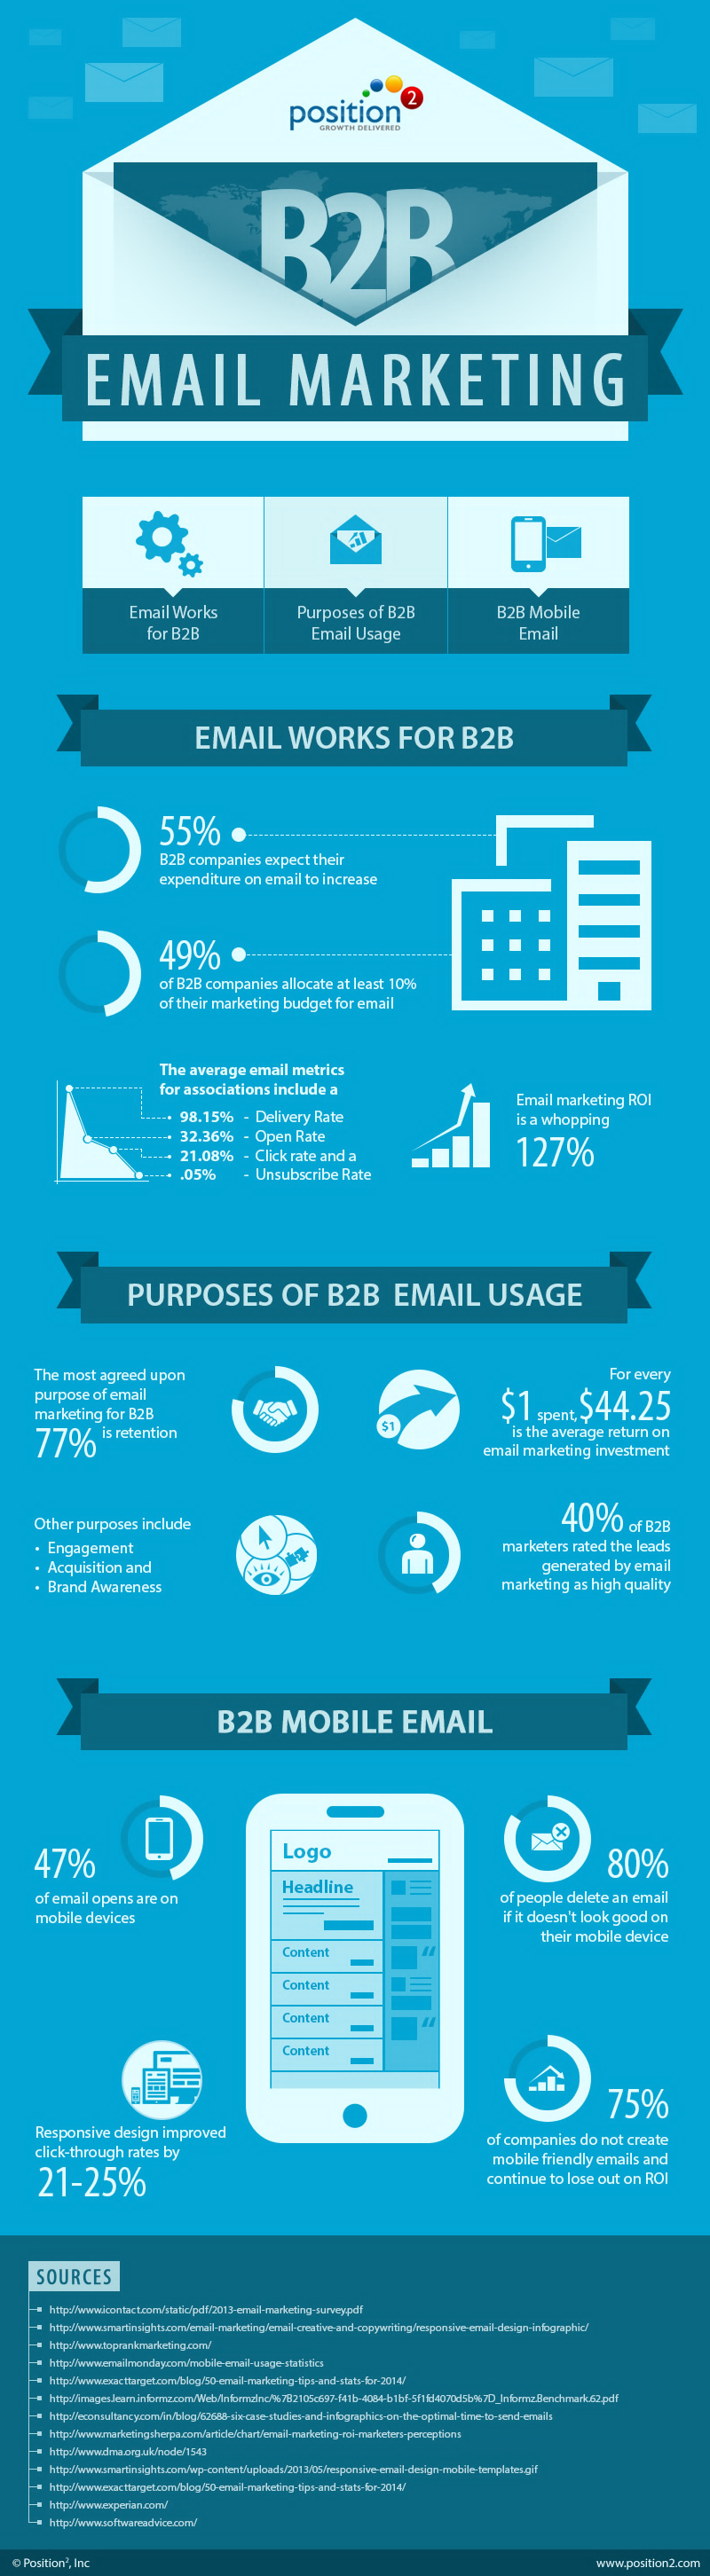 B2B-Email-Marketing-Infographic